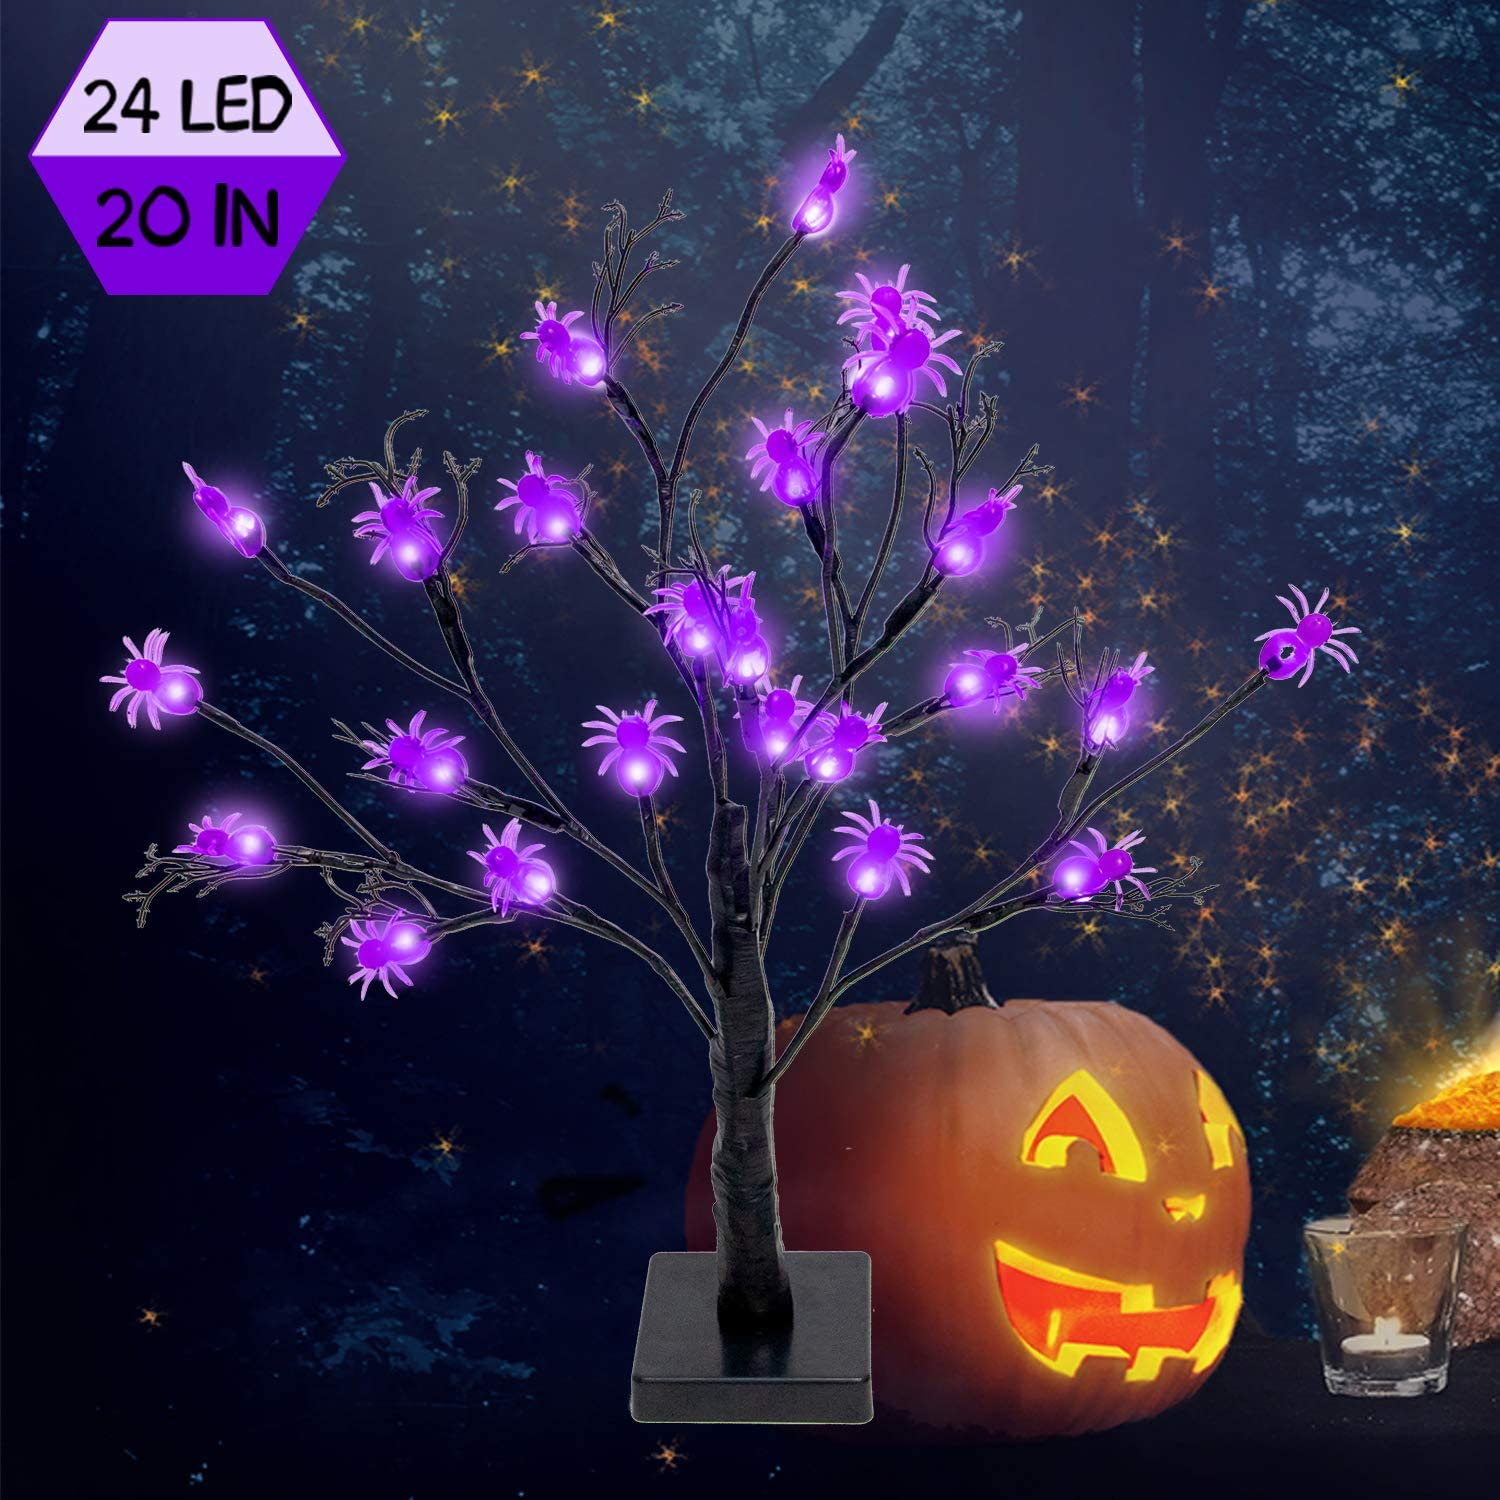 FUNARTY 24 LED Lighted Halloween Tree Battery Operated Birch Tree Lights Table Centerpiece with 24 DIY Spiders for Indoor Home Desktop Party Halloween Decorations